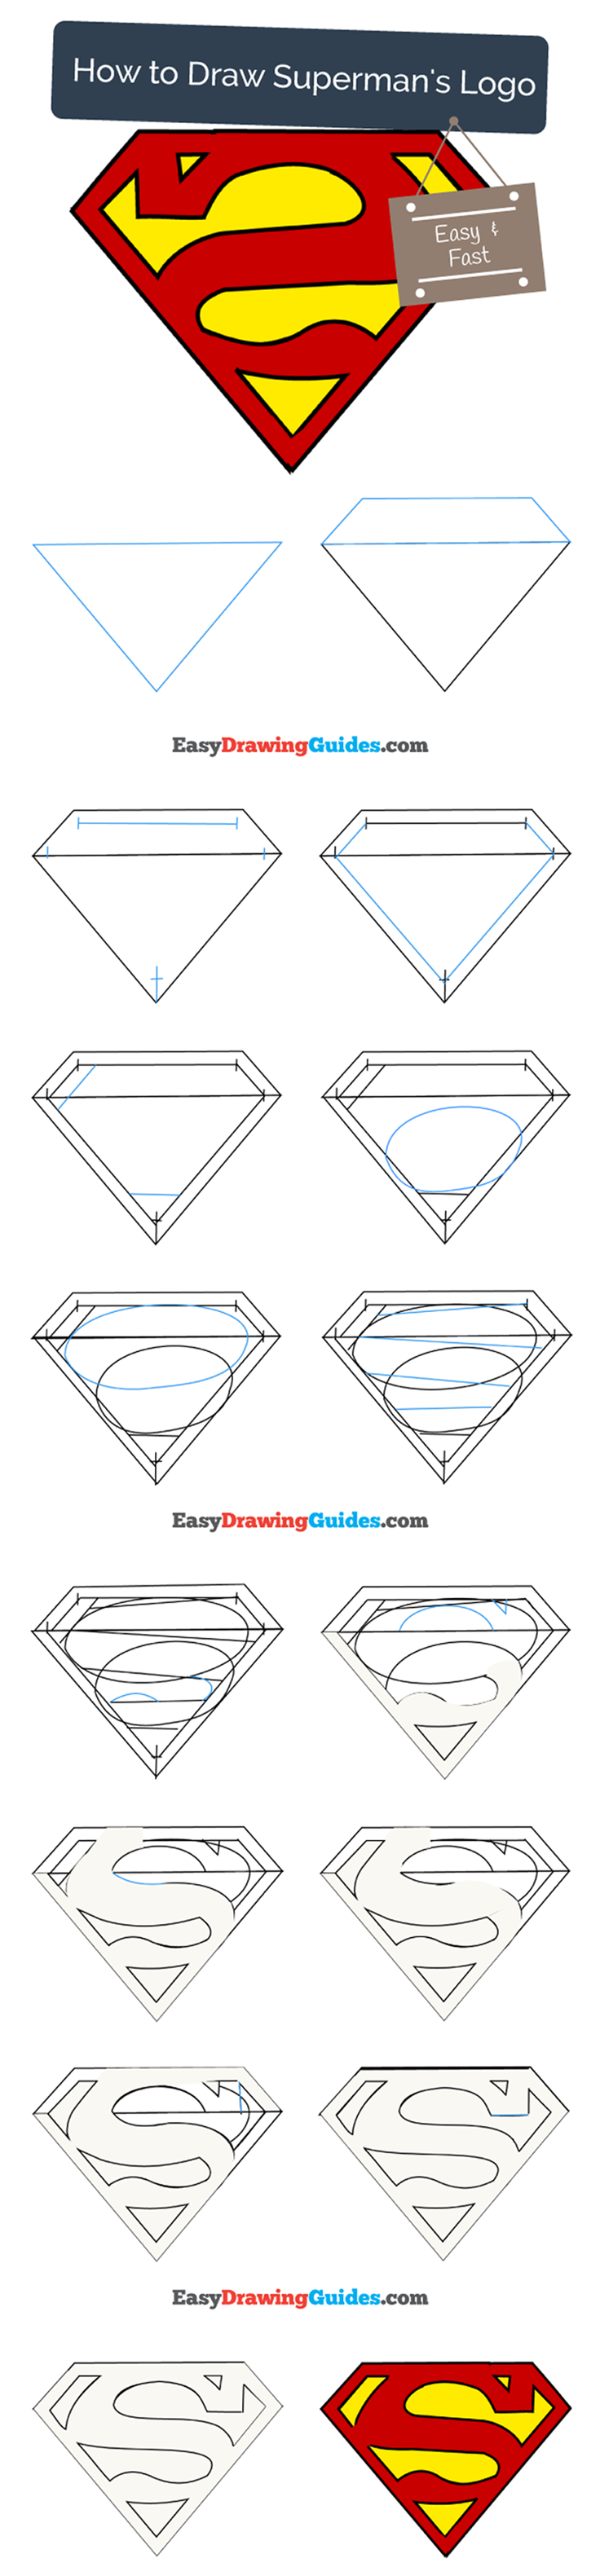 How To Draw Superman Logo Easy Step By Step Drawing Guides Superman Drawing Drawing Tutorials For Kids Drawing Tutorial